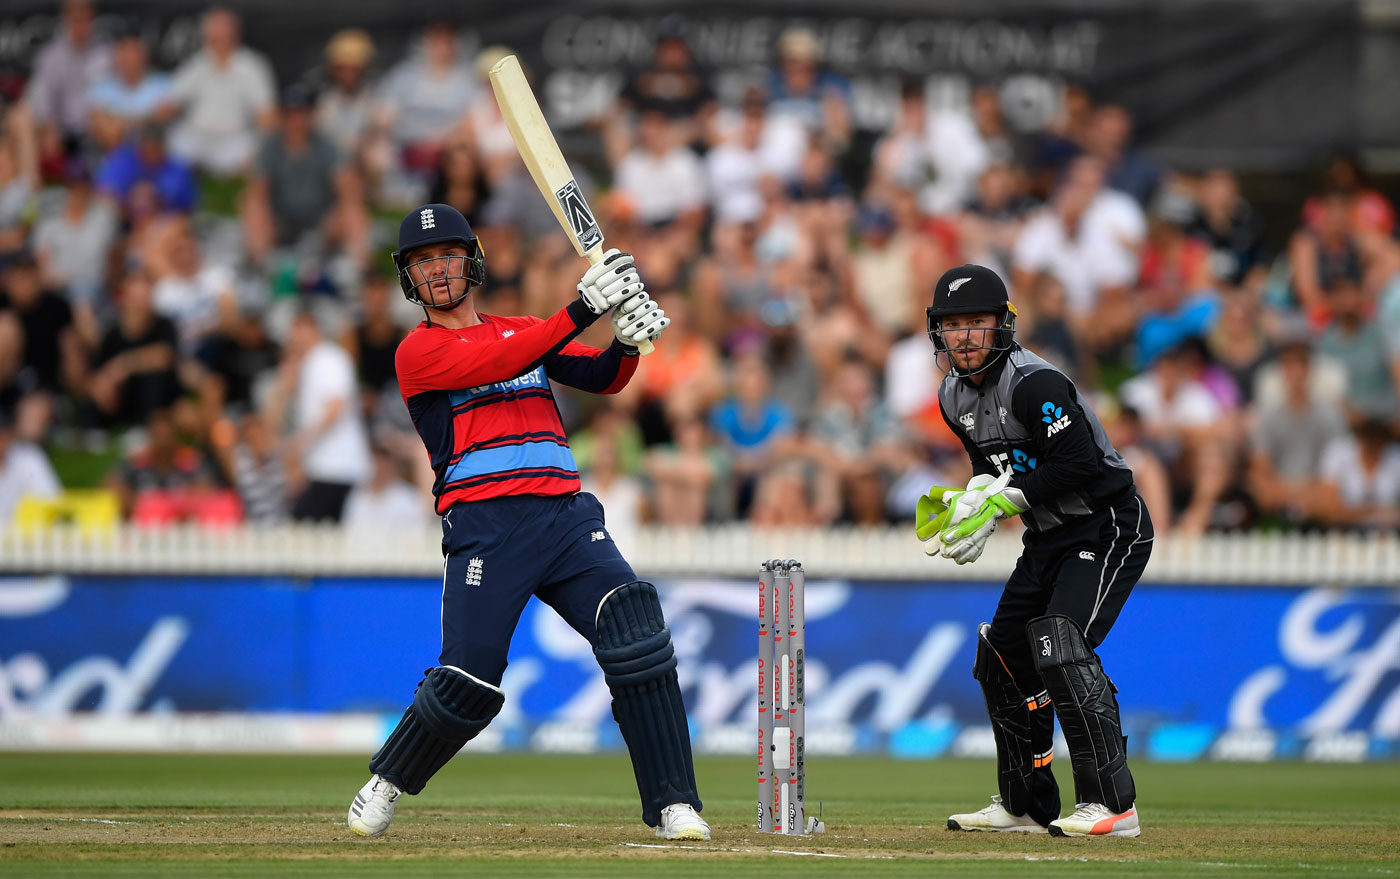 England vs New Zealand 6th T20 Highlights